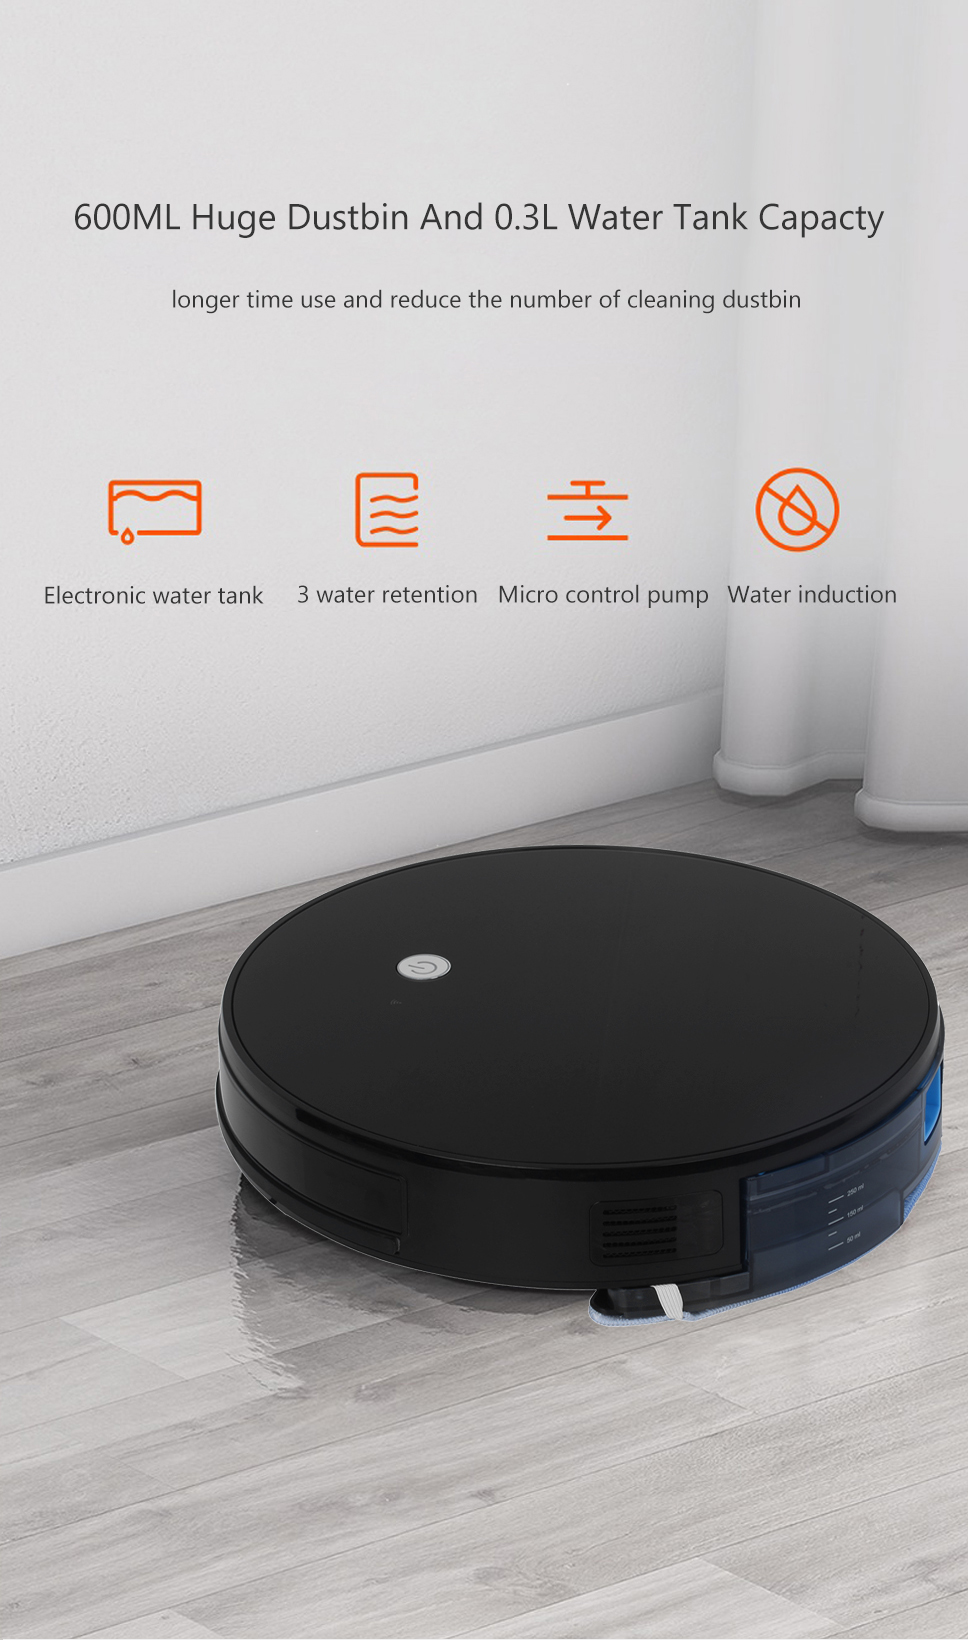 H42d1068ab5fb46e79c08caada5638b092 Home Intelligent Sweeping Robot App Remote Control Wireless Vacuum Cleaner Smart Wiping Machine Automatic Refill Floor Cleaner